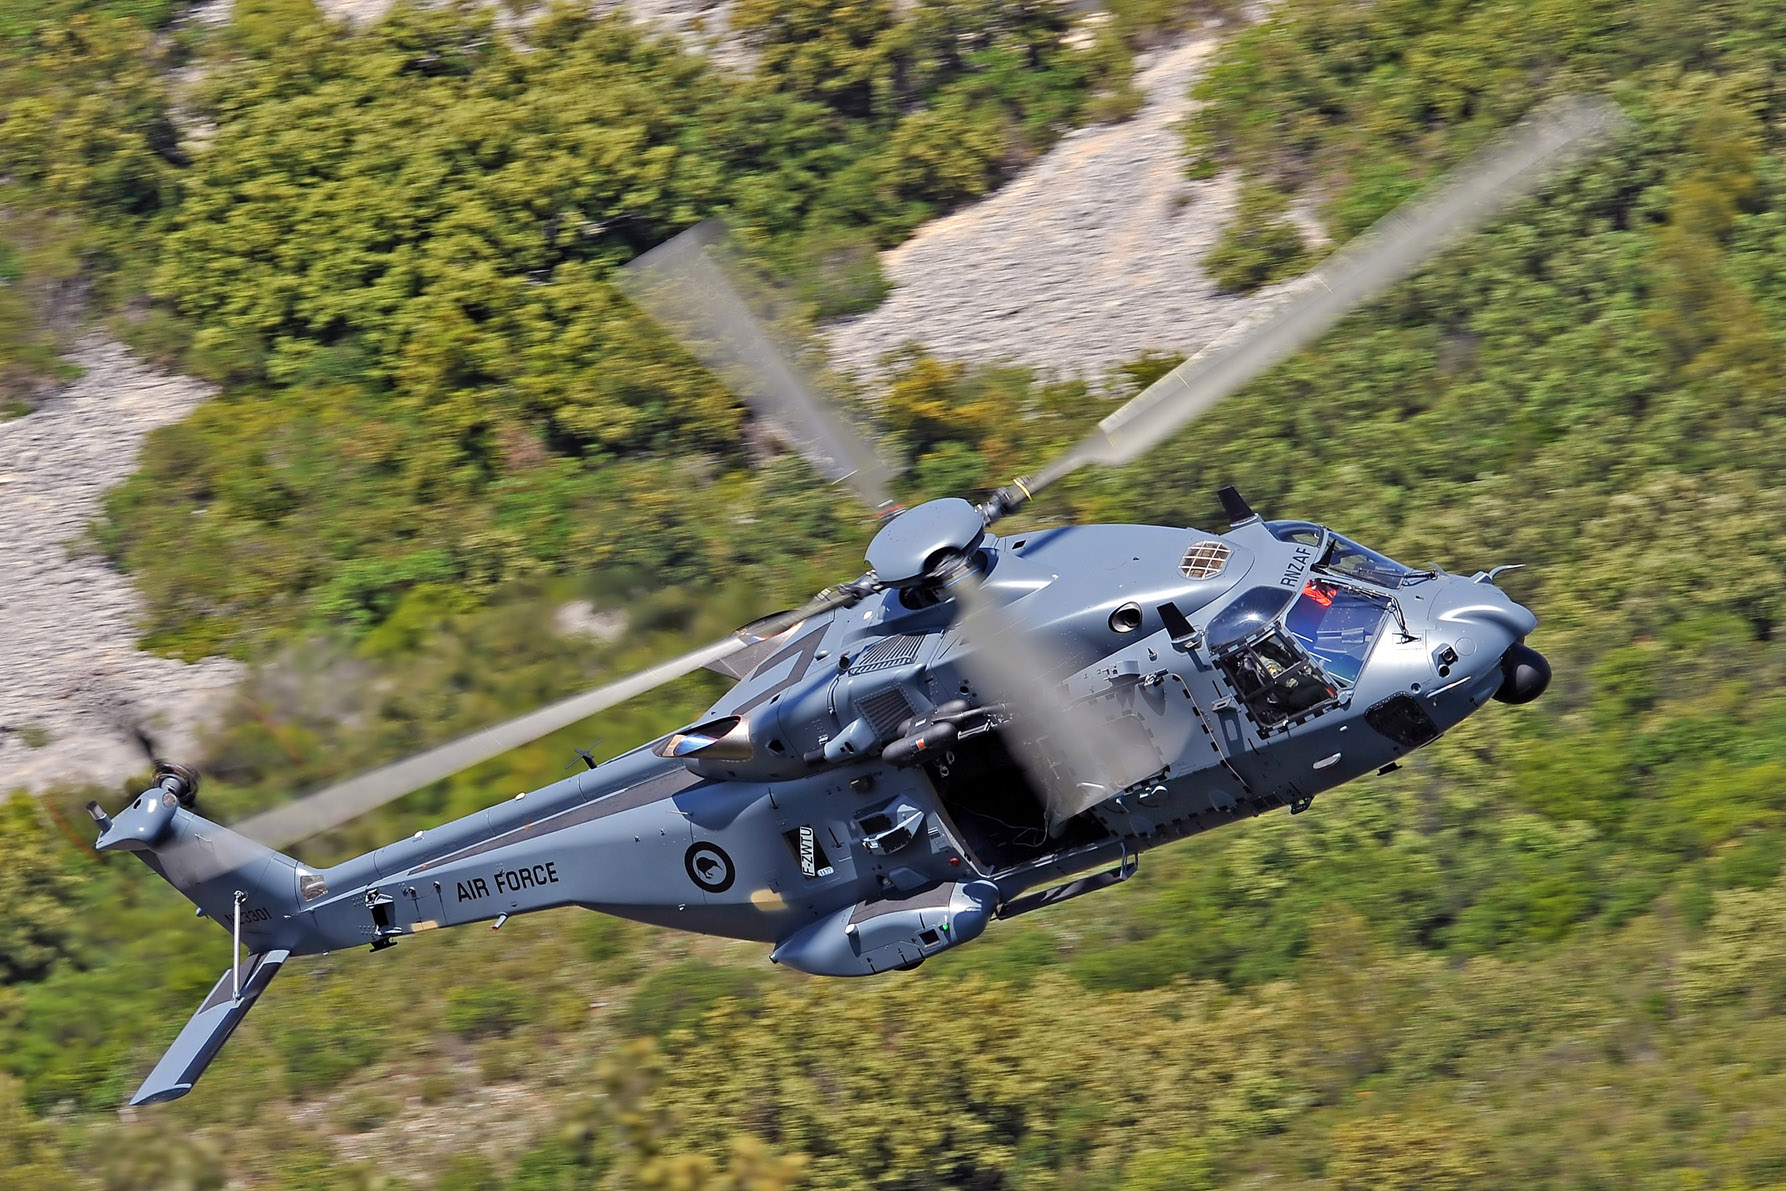 Six more NH90 TTH Caïman helicopters ordered for the French Army